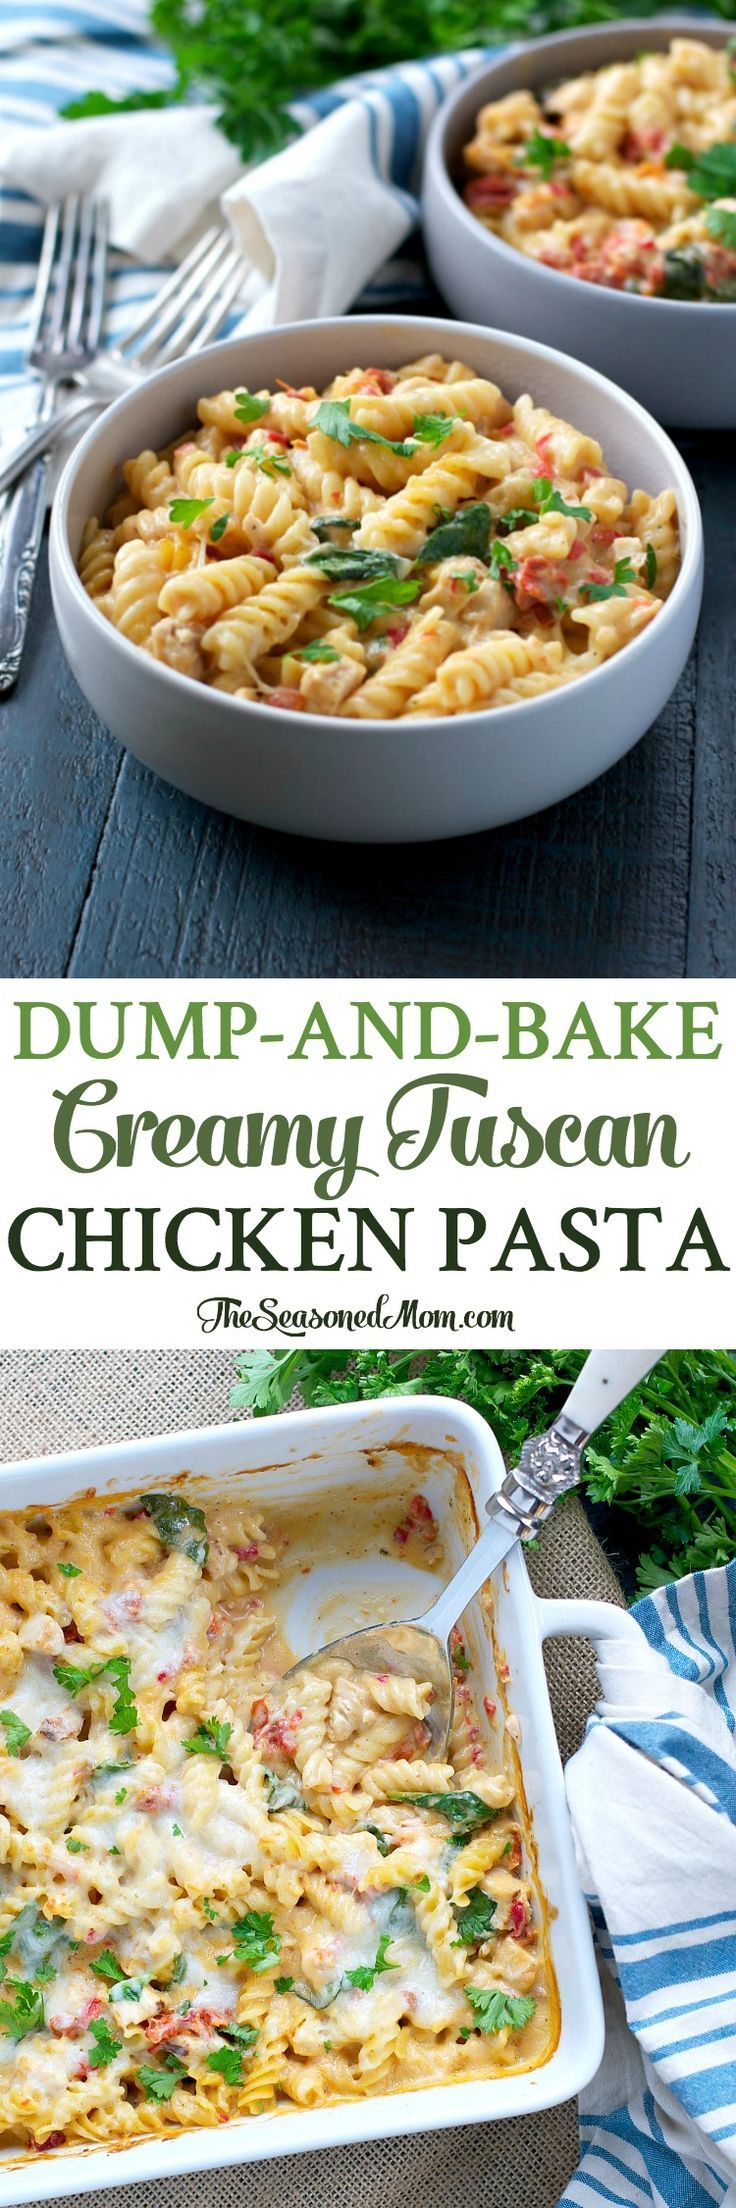 This Dump-and-Bake Creamy Tuscan Chicken Pasta is an easy dinner that everyone loves -- and you don't even have to boil the noodles!